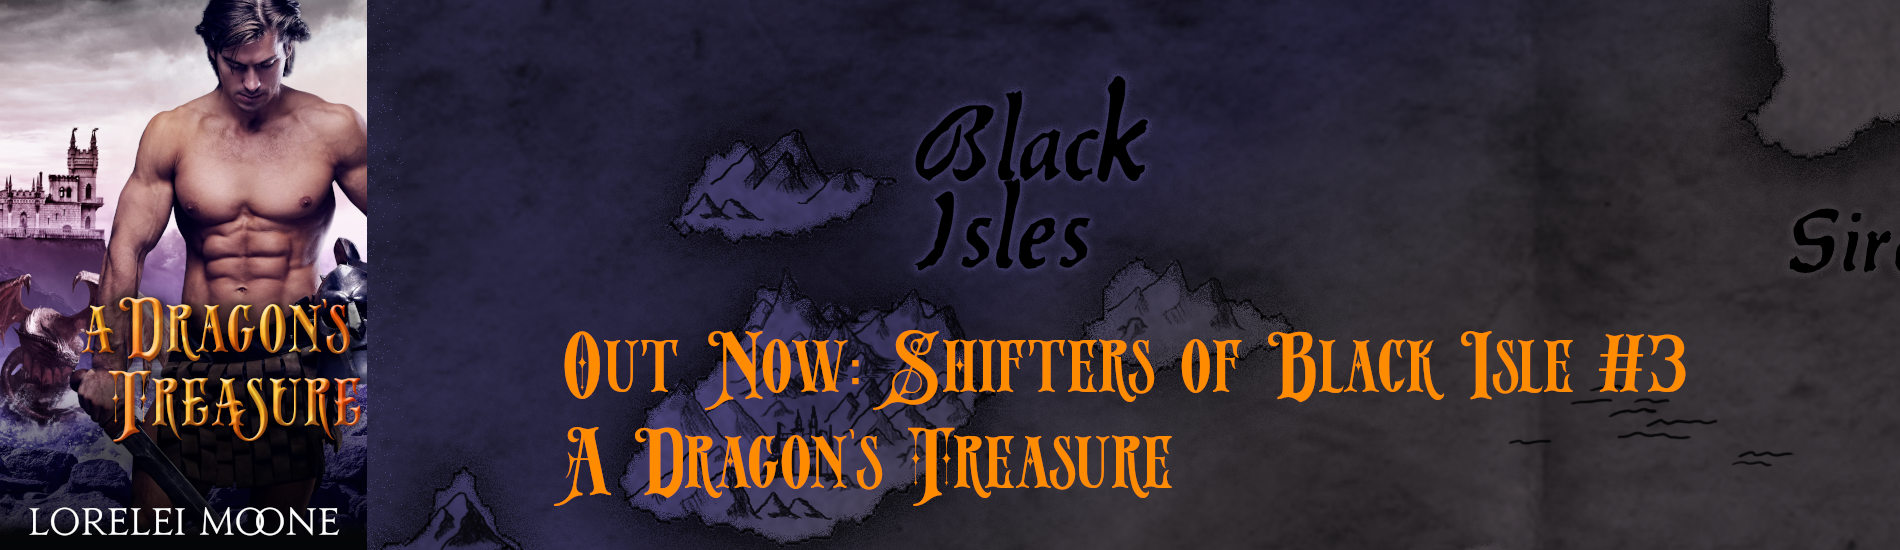 Out Now – A Dragon's Treasure (Shifters of Black Isle #3)